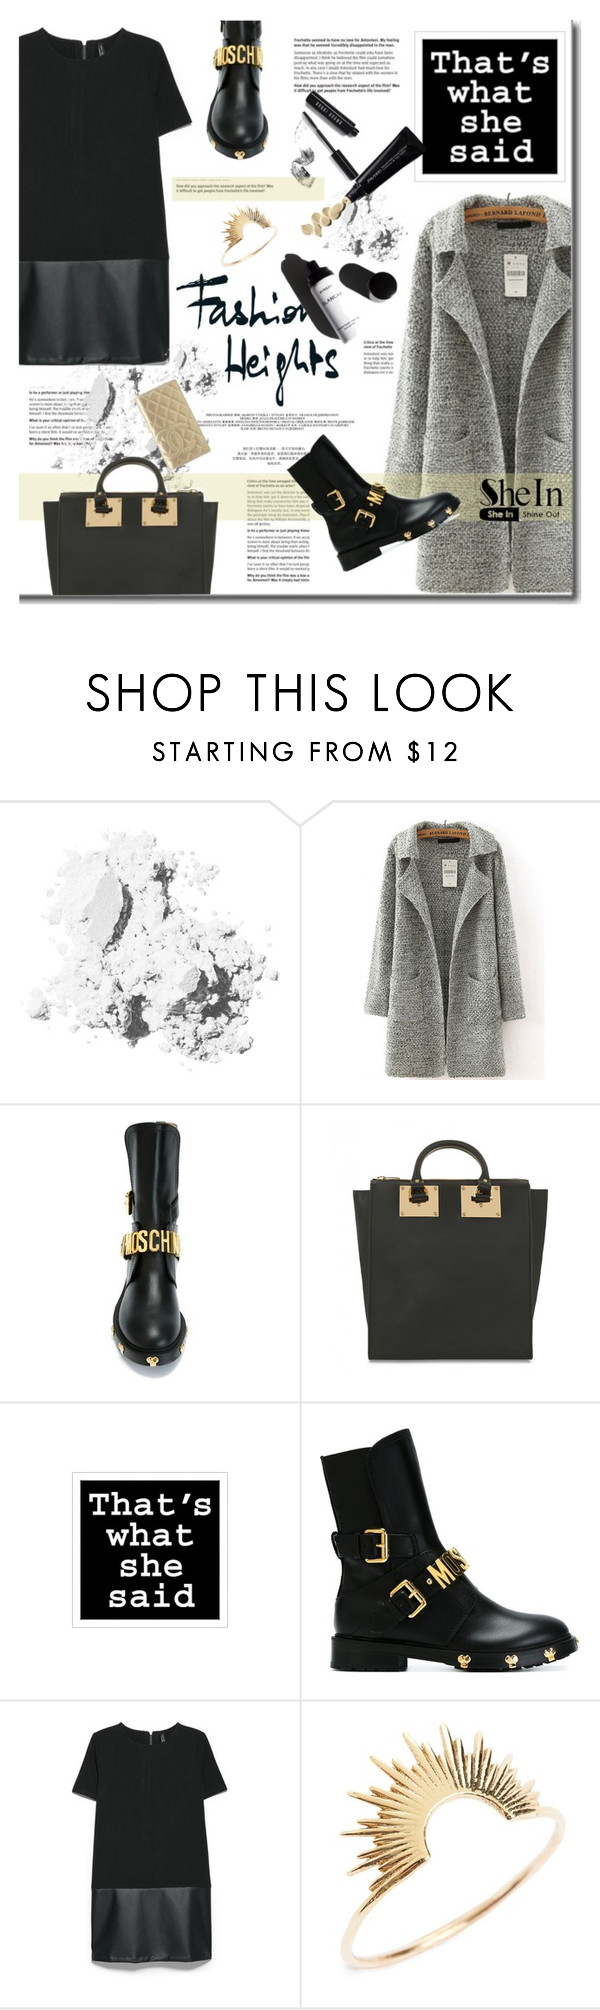 """""""SheIn - Long Sleeve Coat"""" by stylemeup-649 ❤ liked on Polyvore featuring Bobbi Brown Cosmetics, Moschino, Sophie Hulme, MANGO, Garance Doré, Sarah & Sebastian and Chanel"""